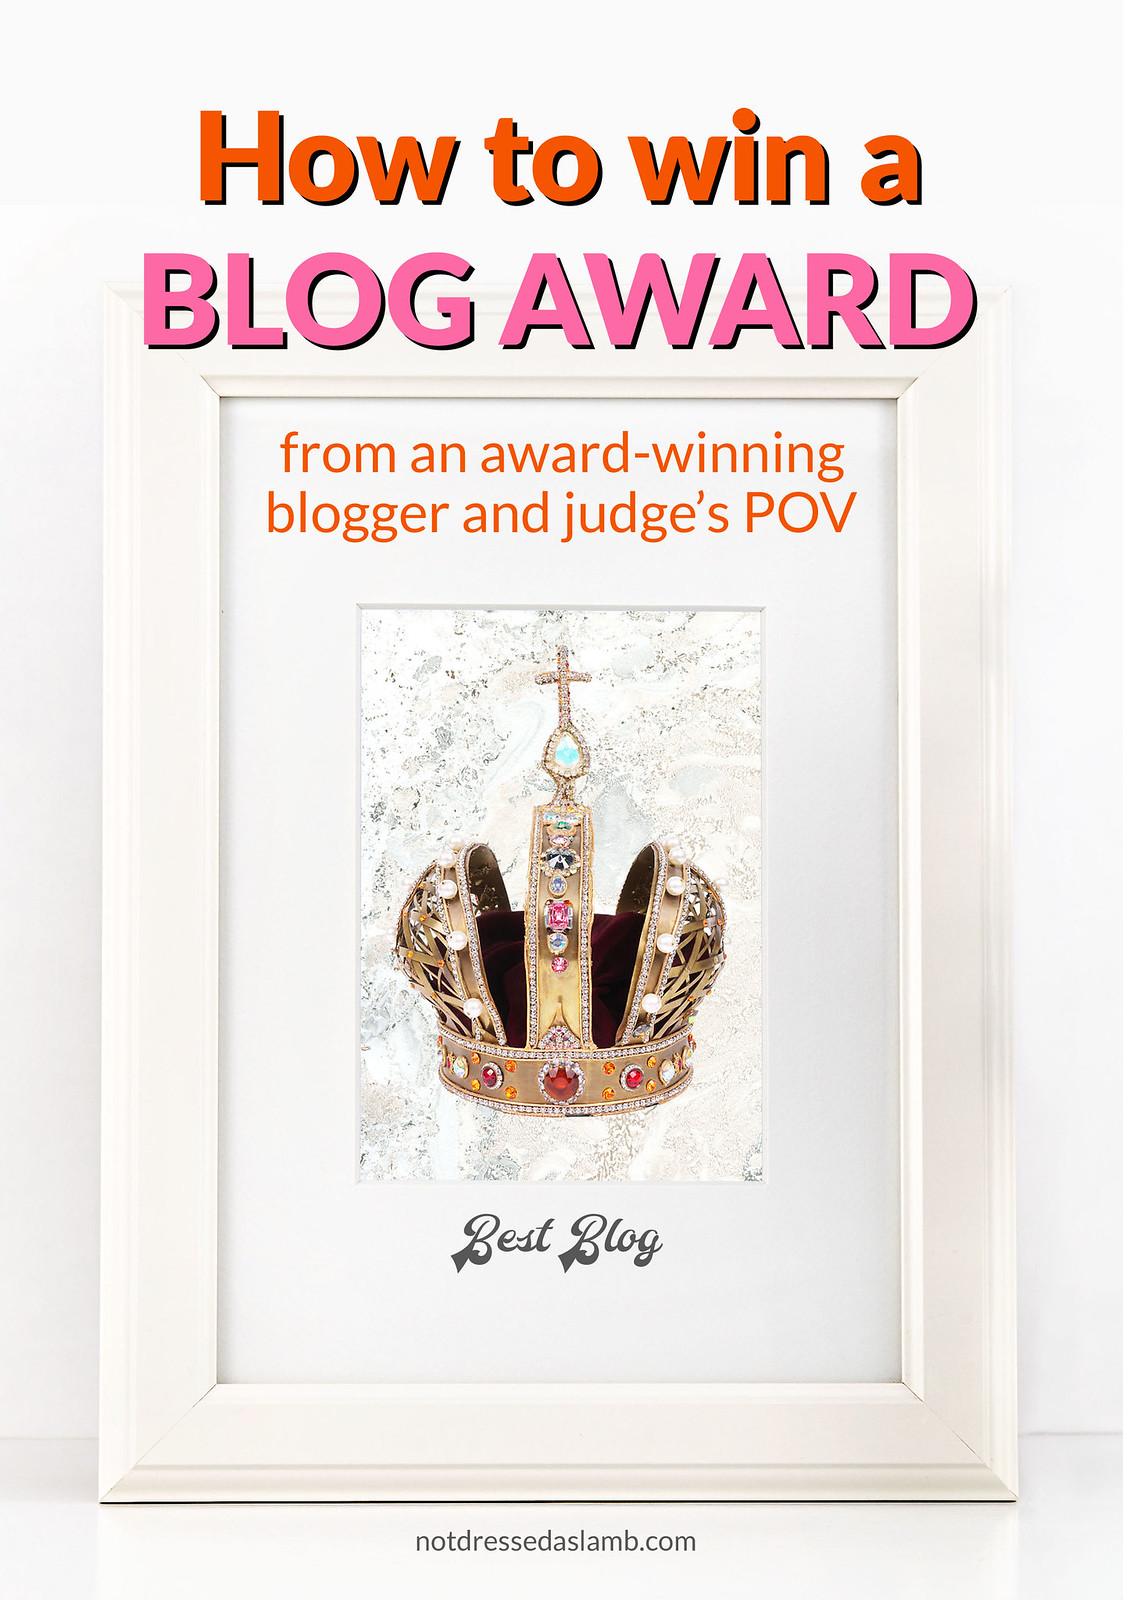 How to Win a Blog Award From a Judge and Award-Winning Blogger's POV | Not Dressed As Lamb